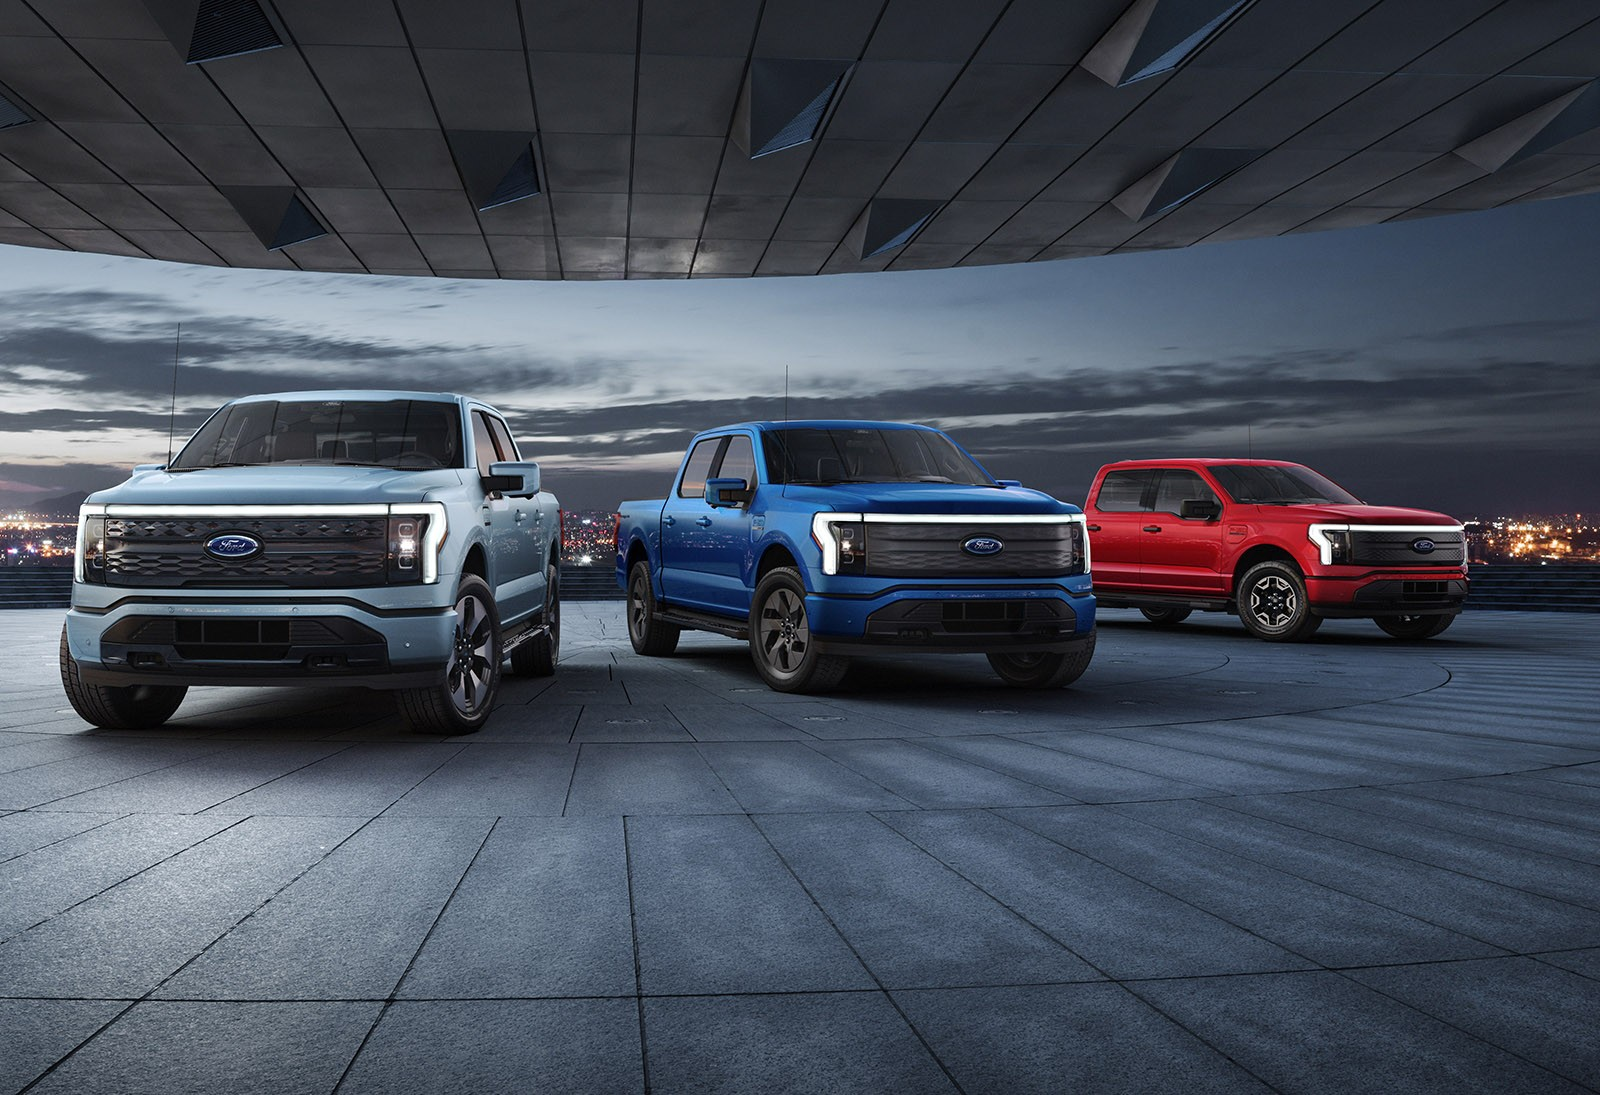 Rising F-Series Truck Sales Help Ford Power Through Chip Shortage